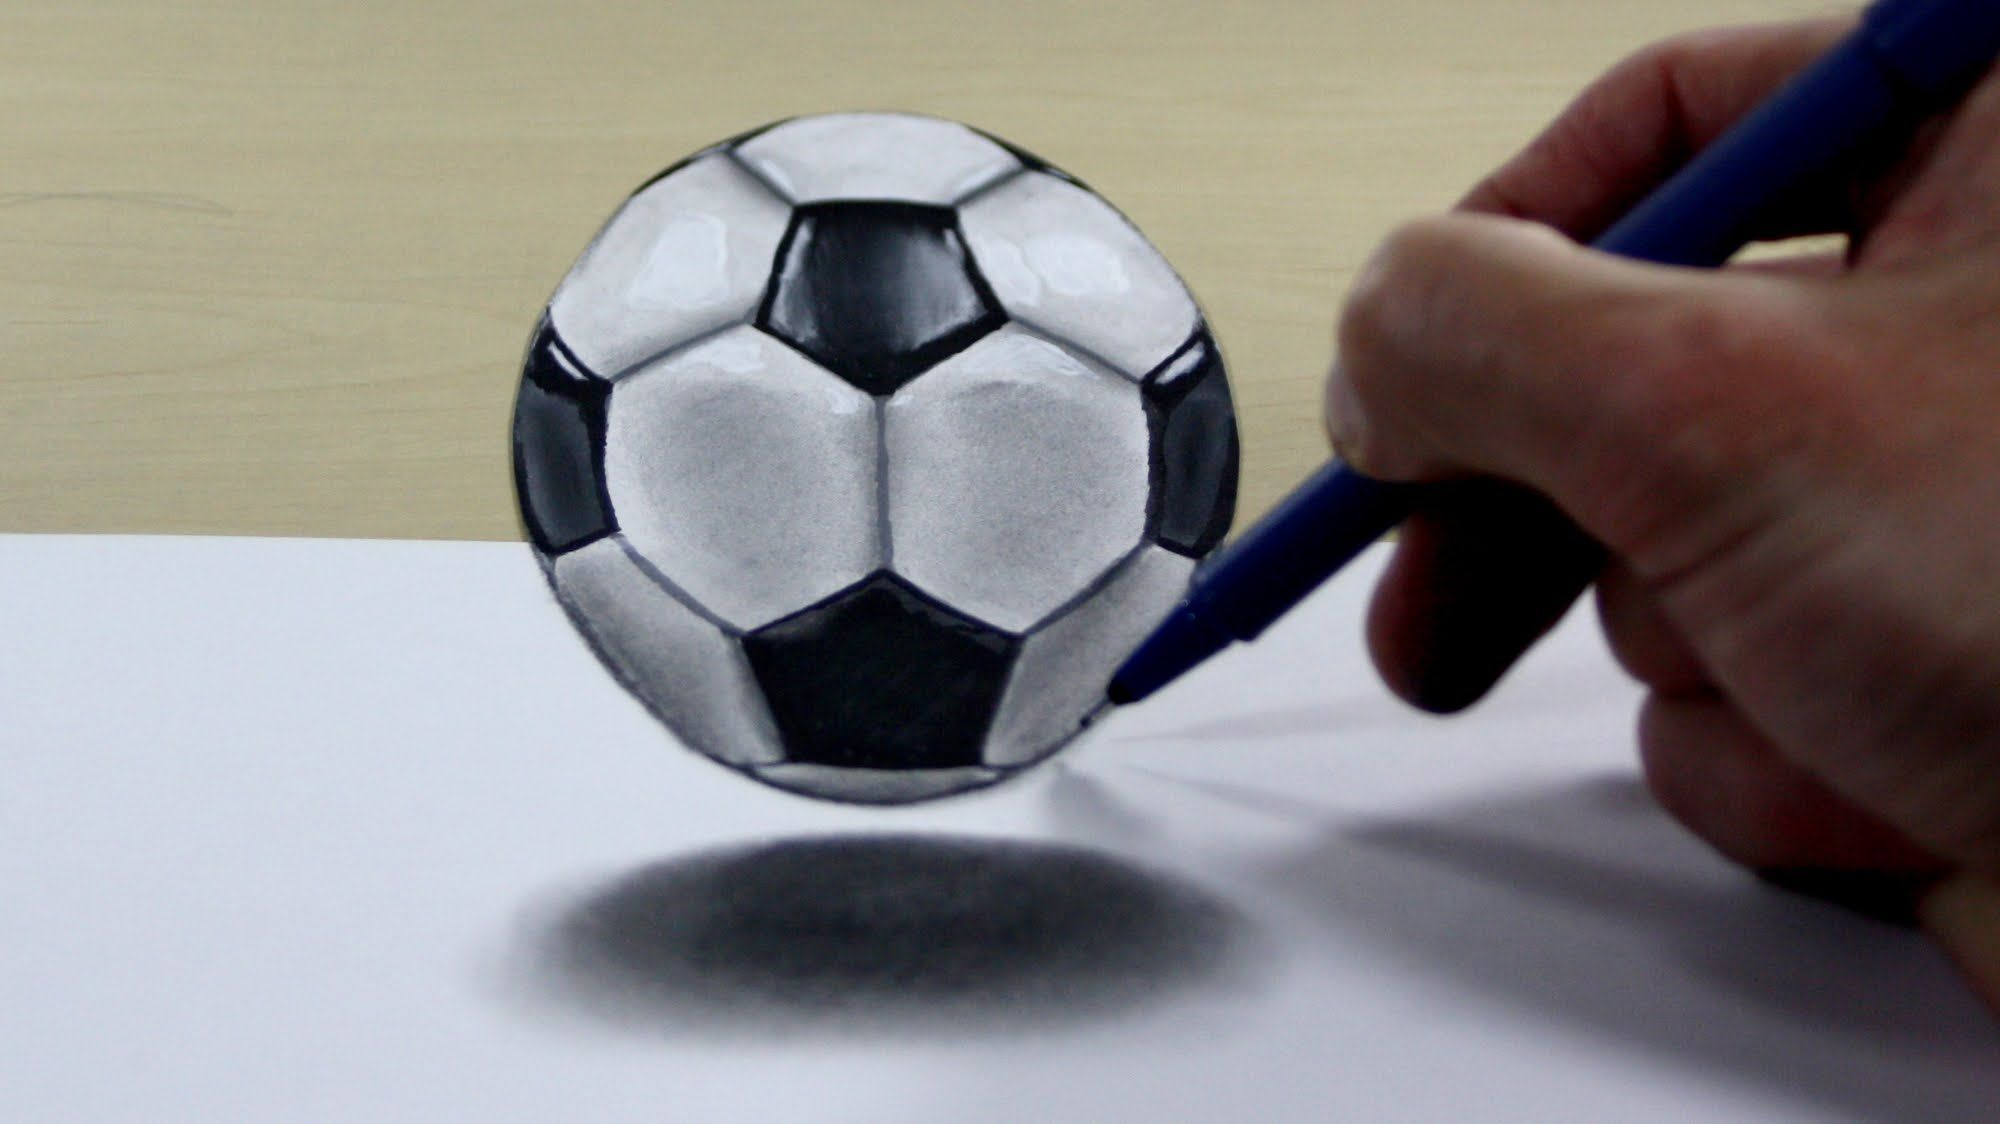 2000x1124 3d Trick Art On Paper Soccer Ball 3d Paintings And Drawings